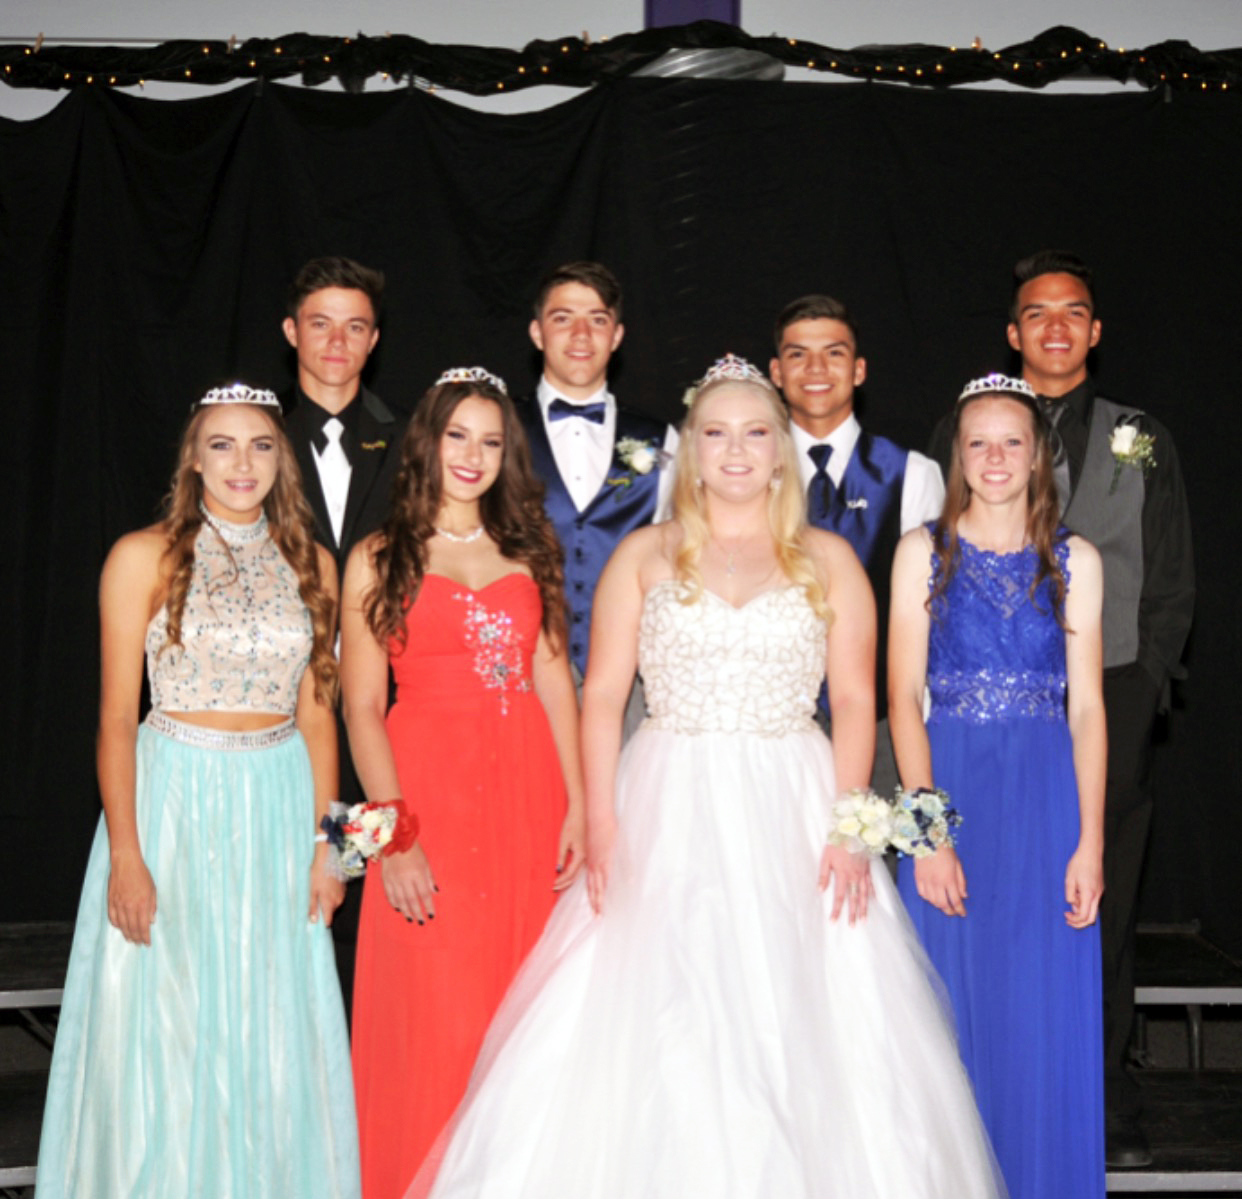 Lincoln County High School prom a night to remember